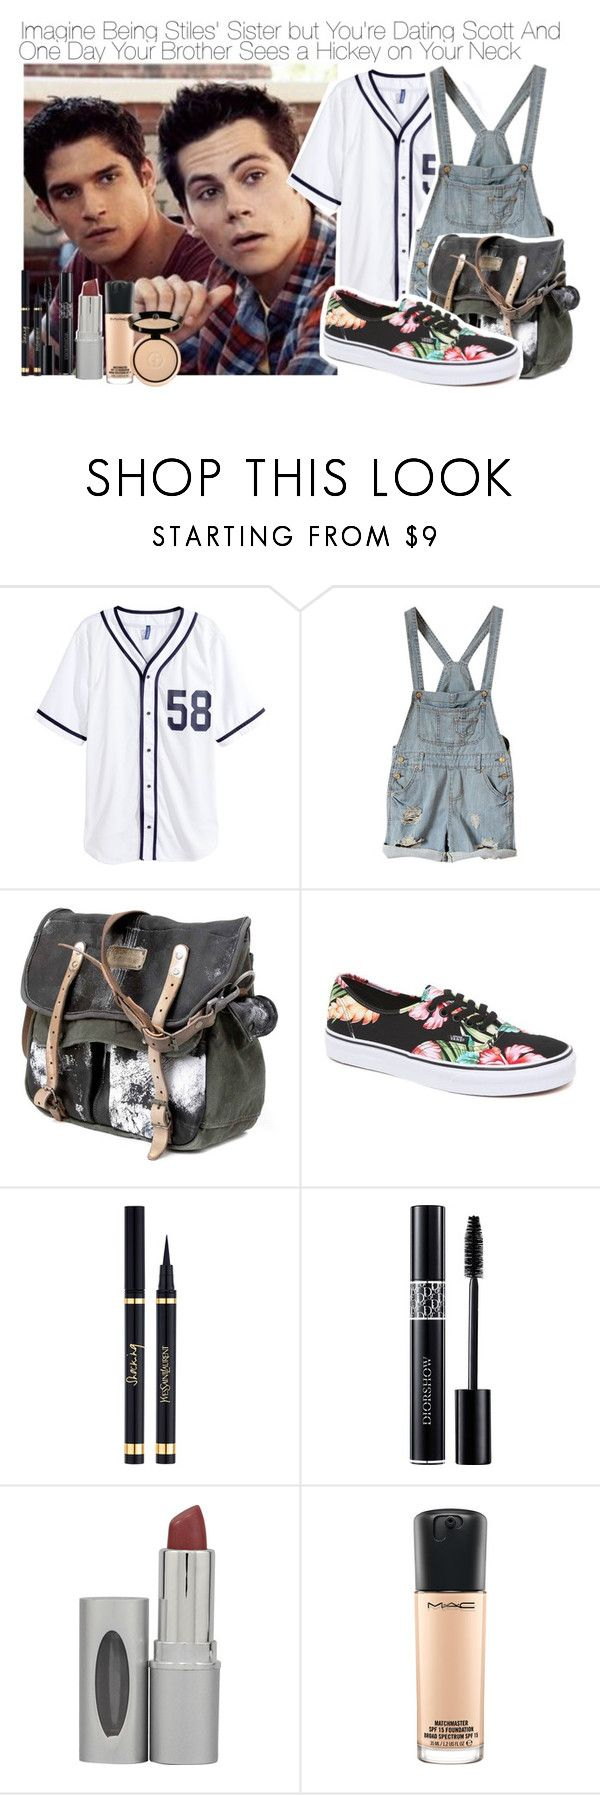 """Imagine Being Stiles' Sister but You're Dating Scott And One Day Your Brother Sees a Hickey on Your Neck"" by fandomimagineshere ❤ liked on Polyvore featuring H&M, Vans, Yves Saint Laurent, Christian Dior, HoneyBee Gardens, MAC Cosmetics and Giorgio Armani"